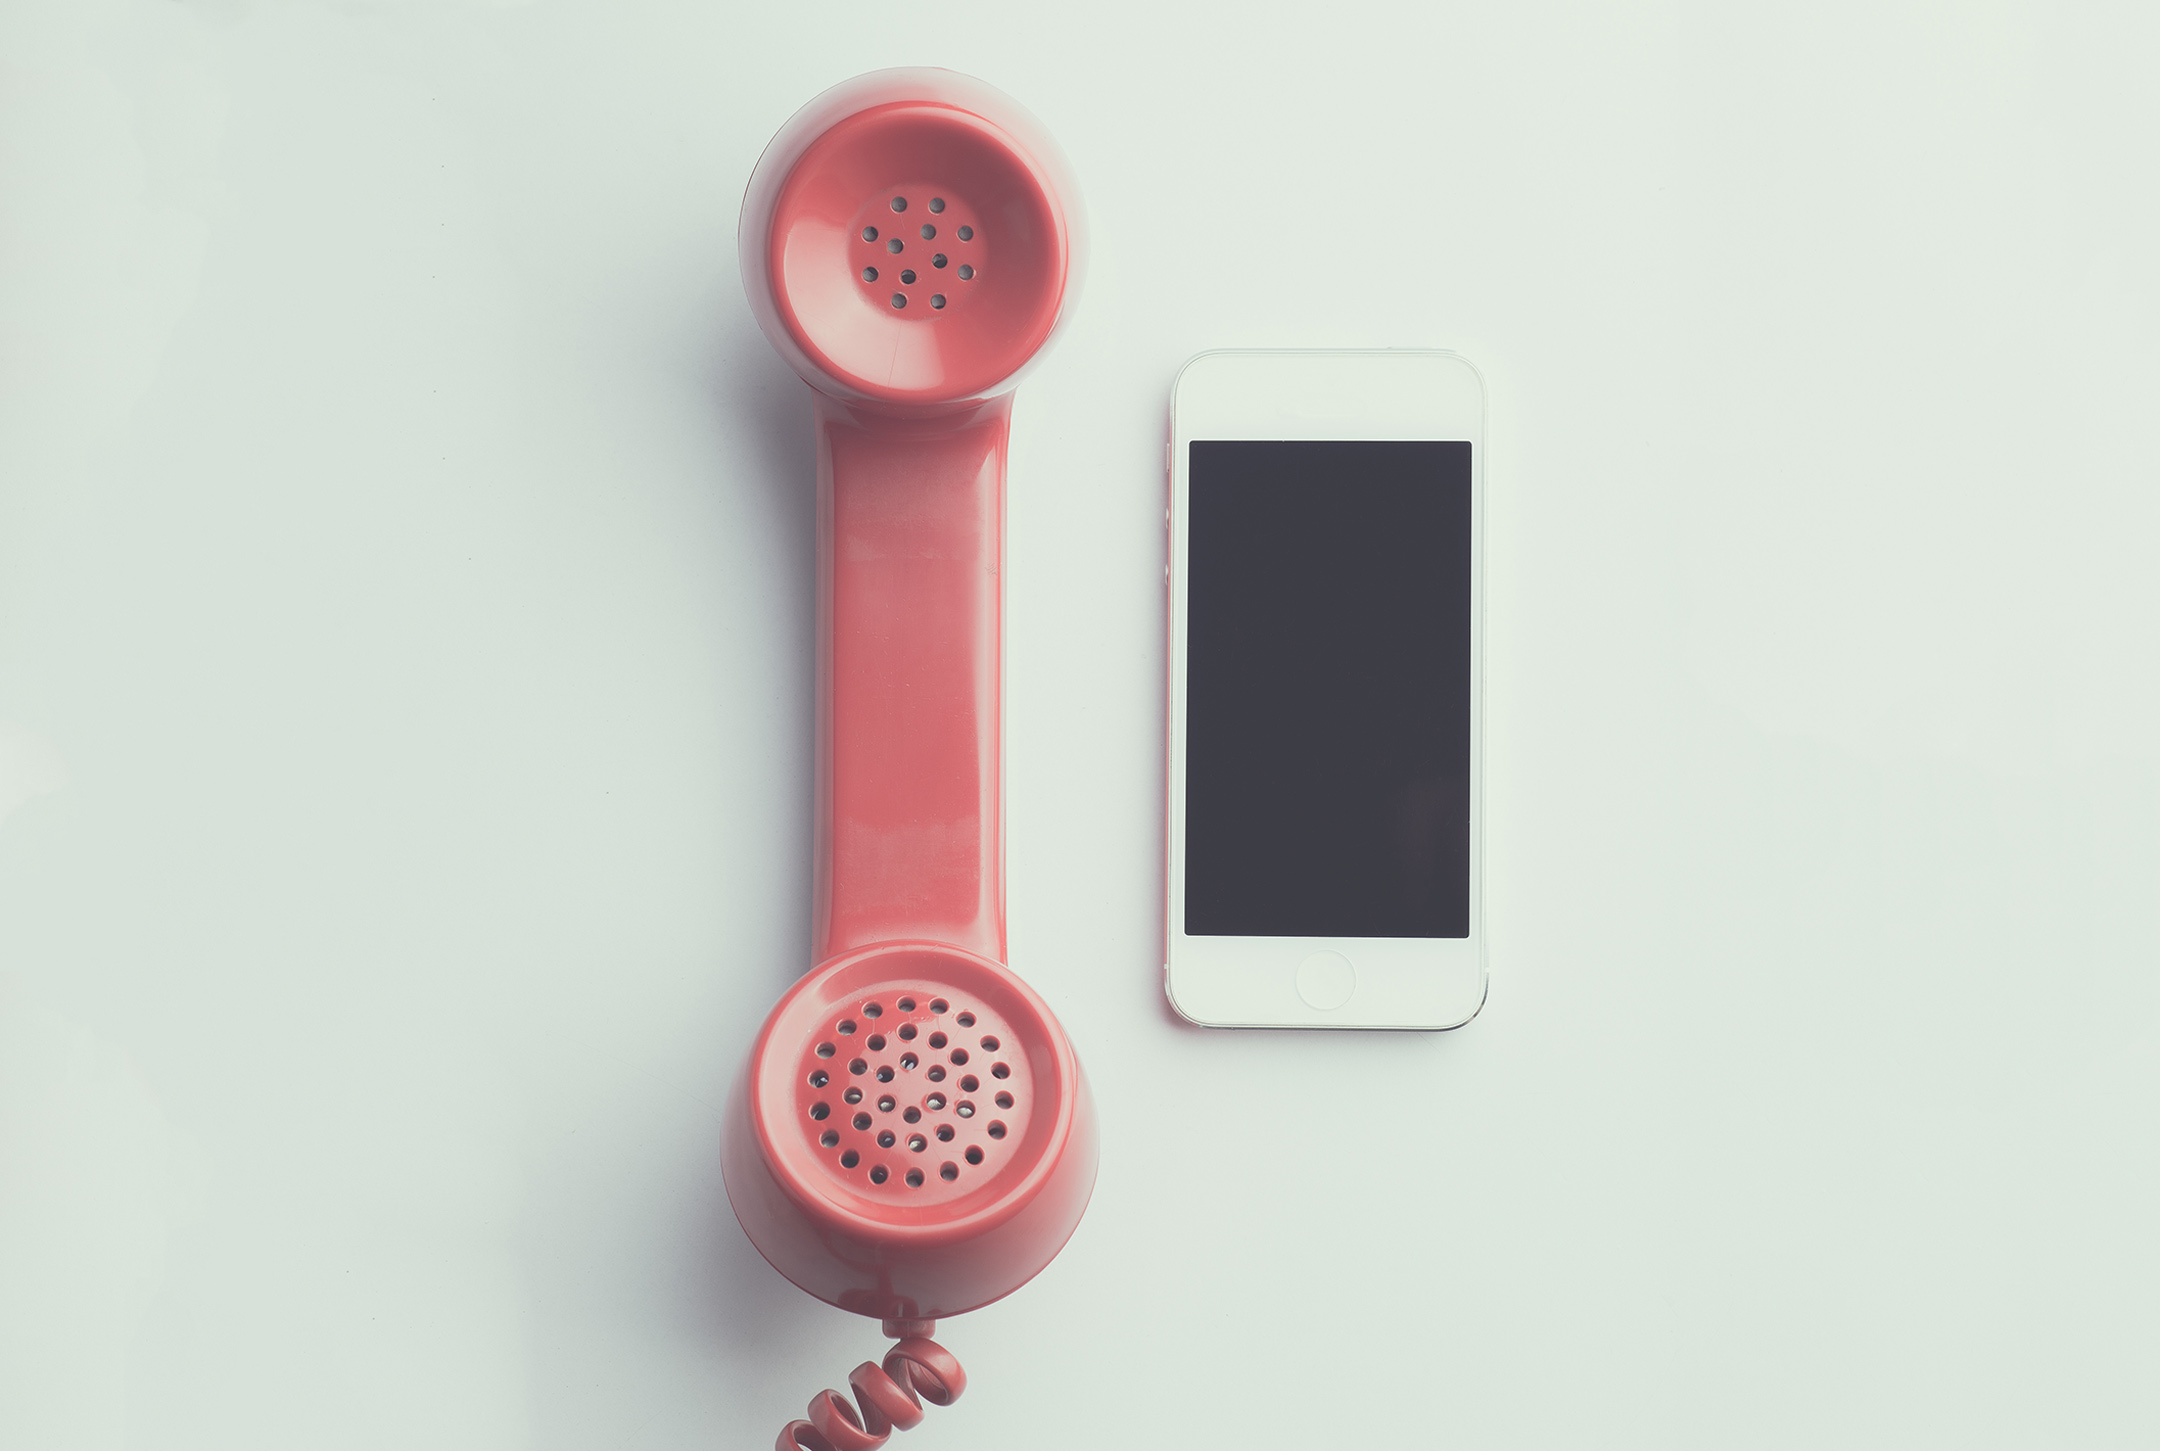 Voice is timeless - $29.99/mo.Unlimited long distance callsFree voicemail, caller ID & call waiting